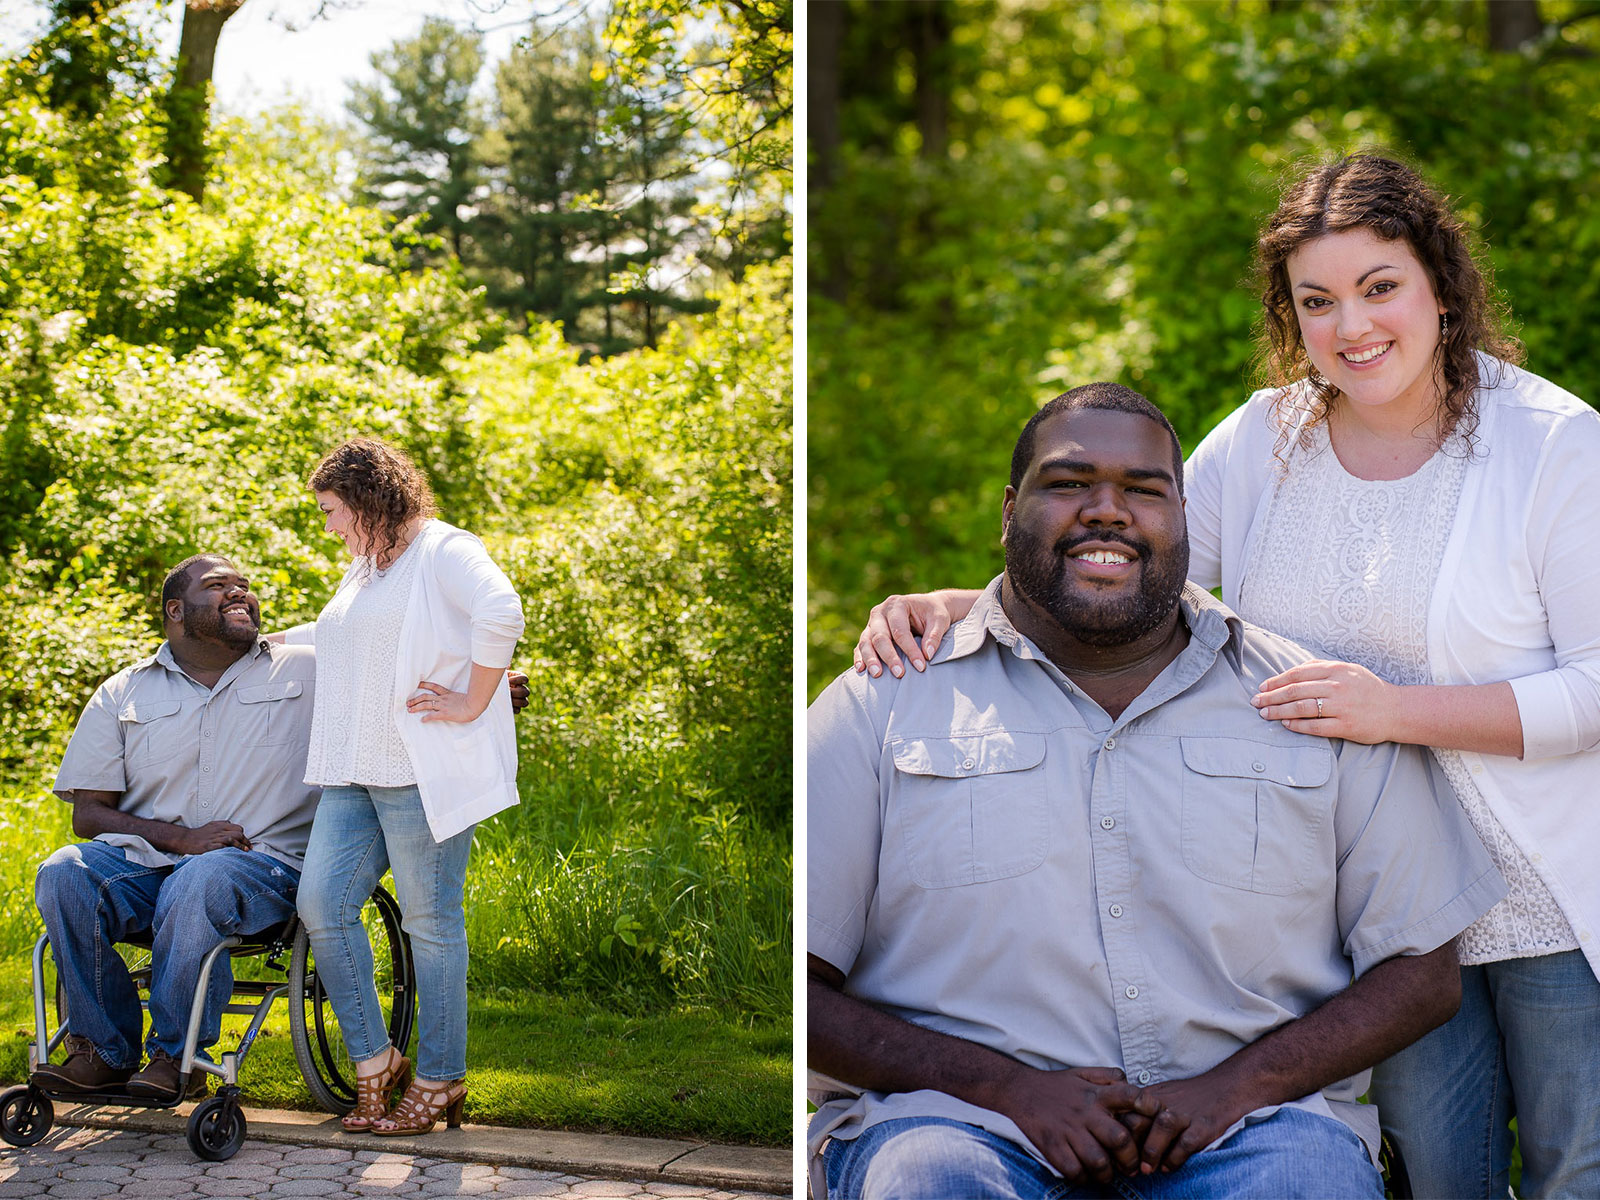 Eric_and_Christy_Photography_Blog_Laura_Jamal_Engagement-2-3